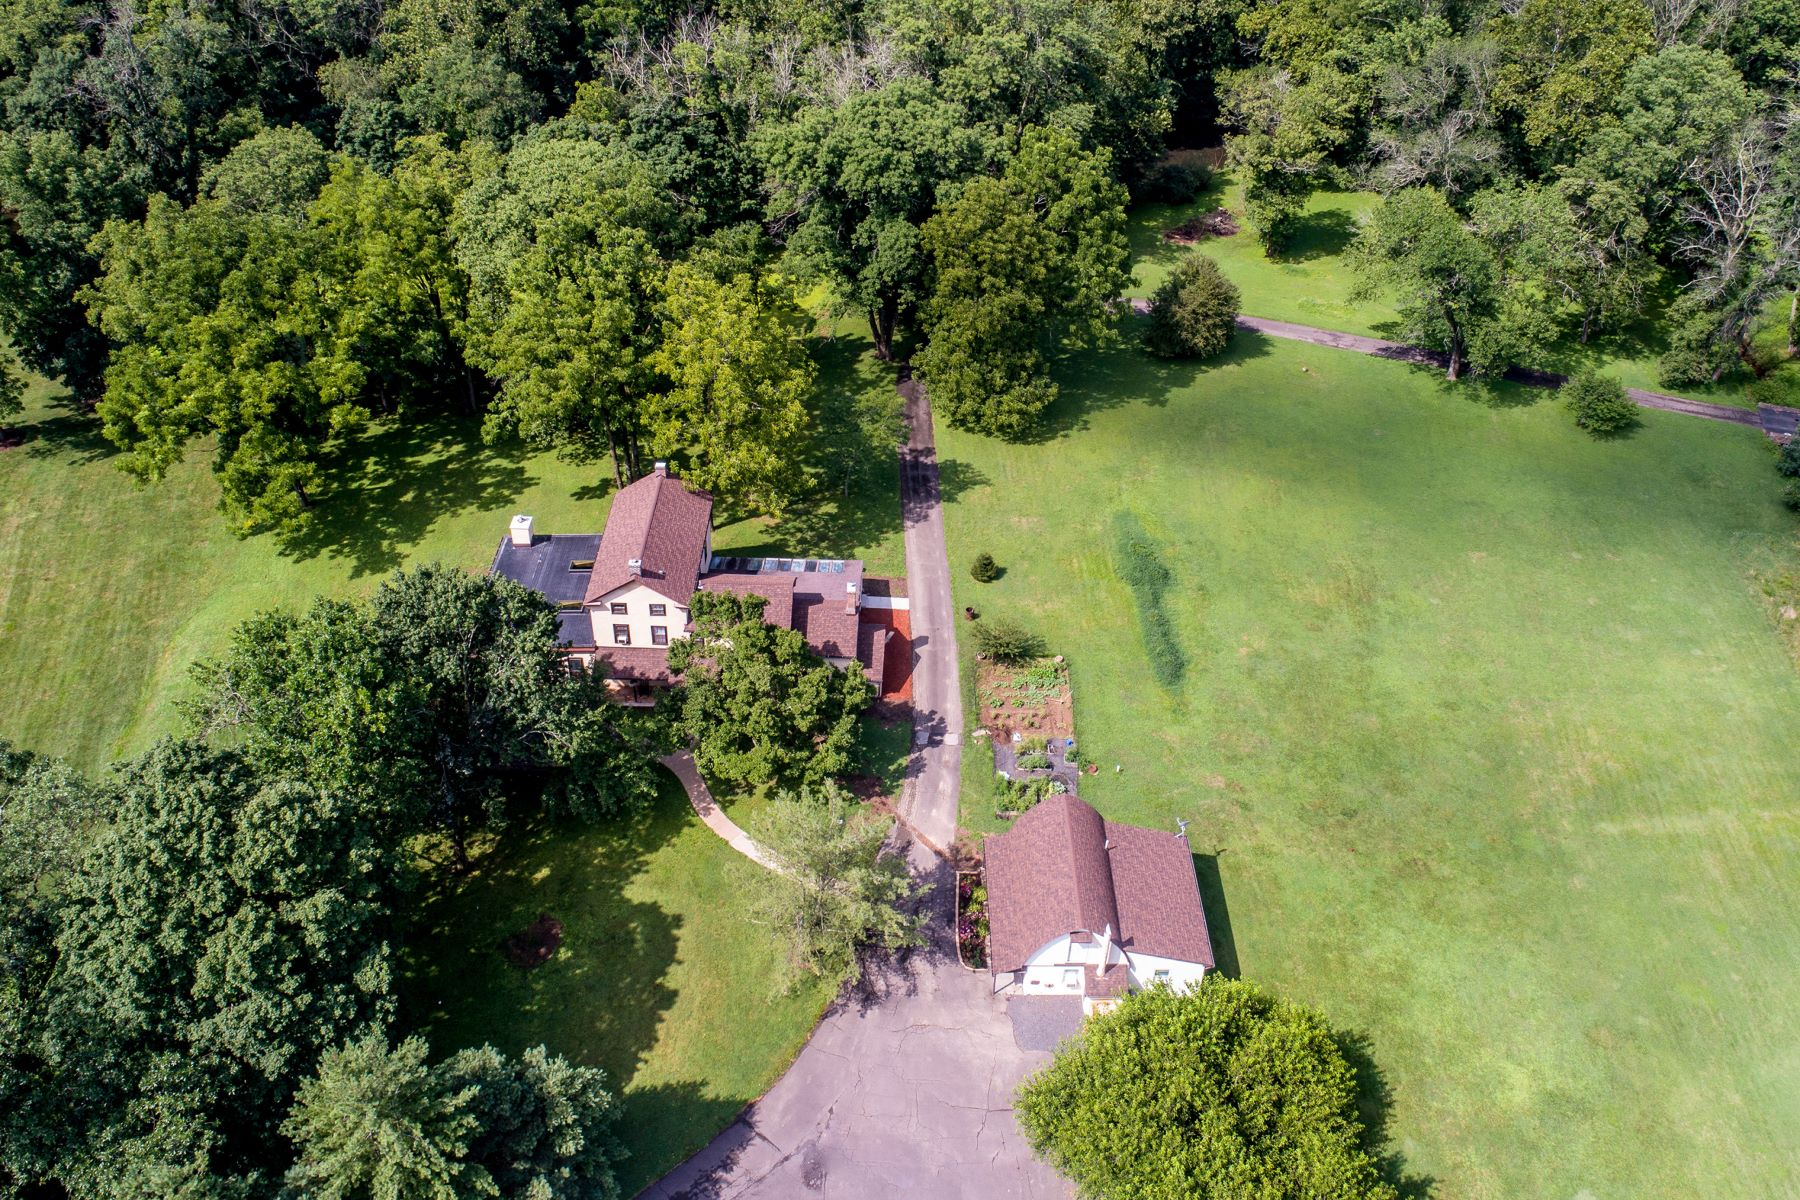 Single Family Homes for Sale at 91 CREEK RD Chalfont, Pennsylvania 18914 United States